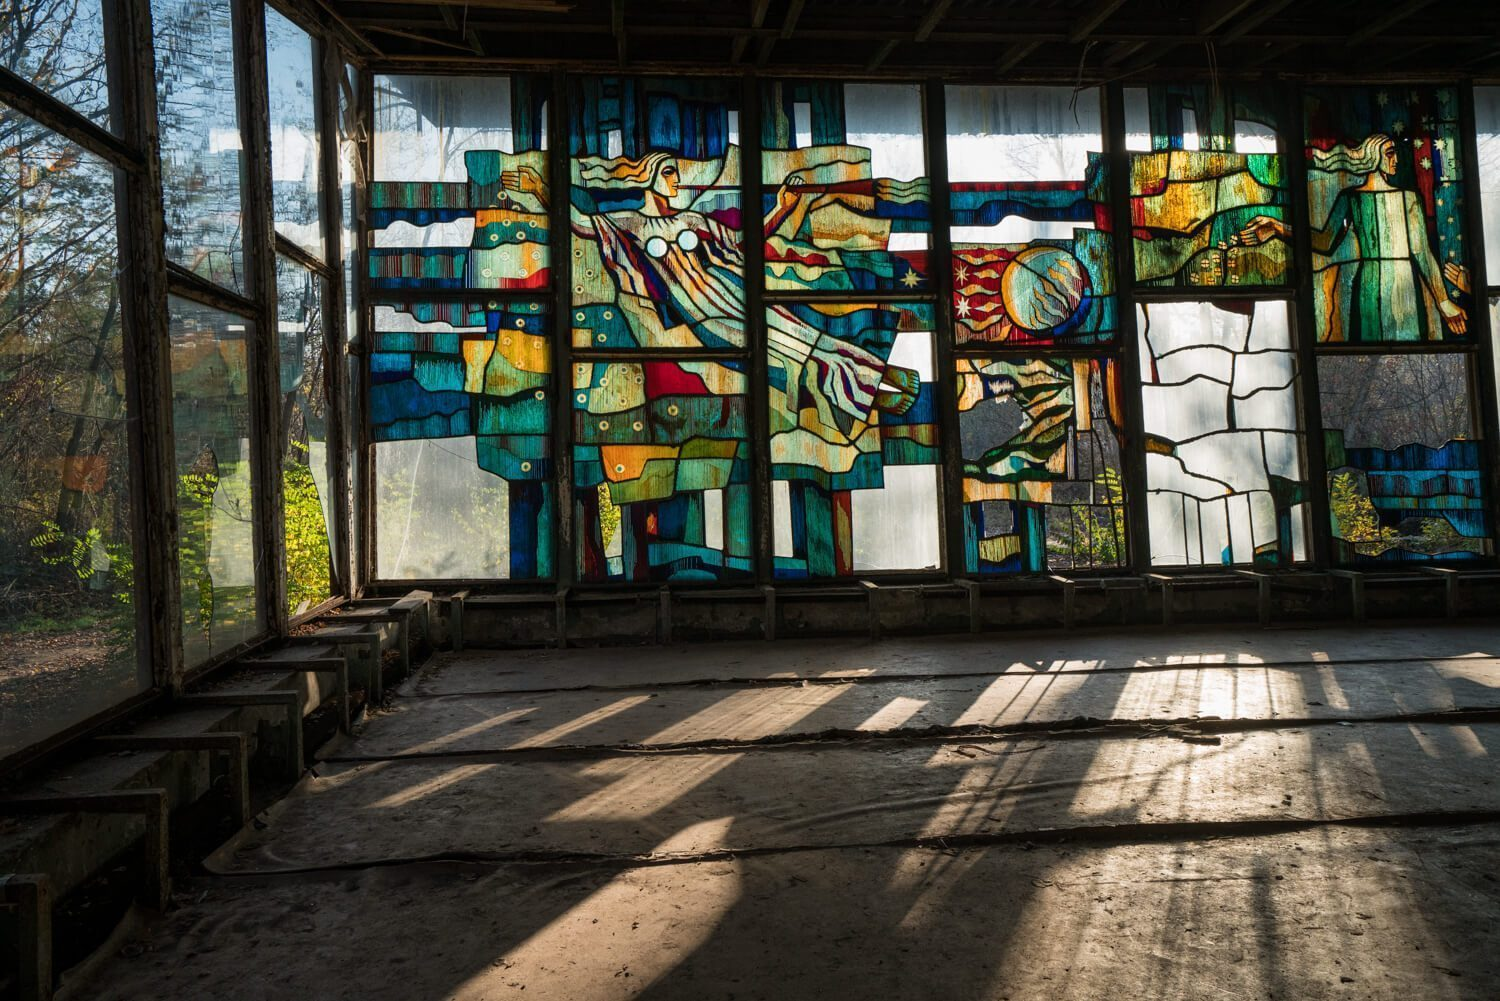 The stained glass at the cafe in Pripyat.